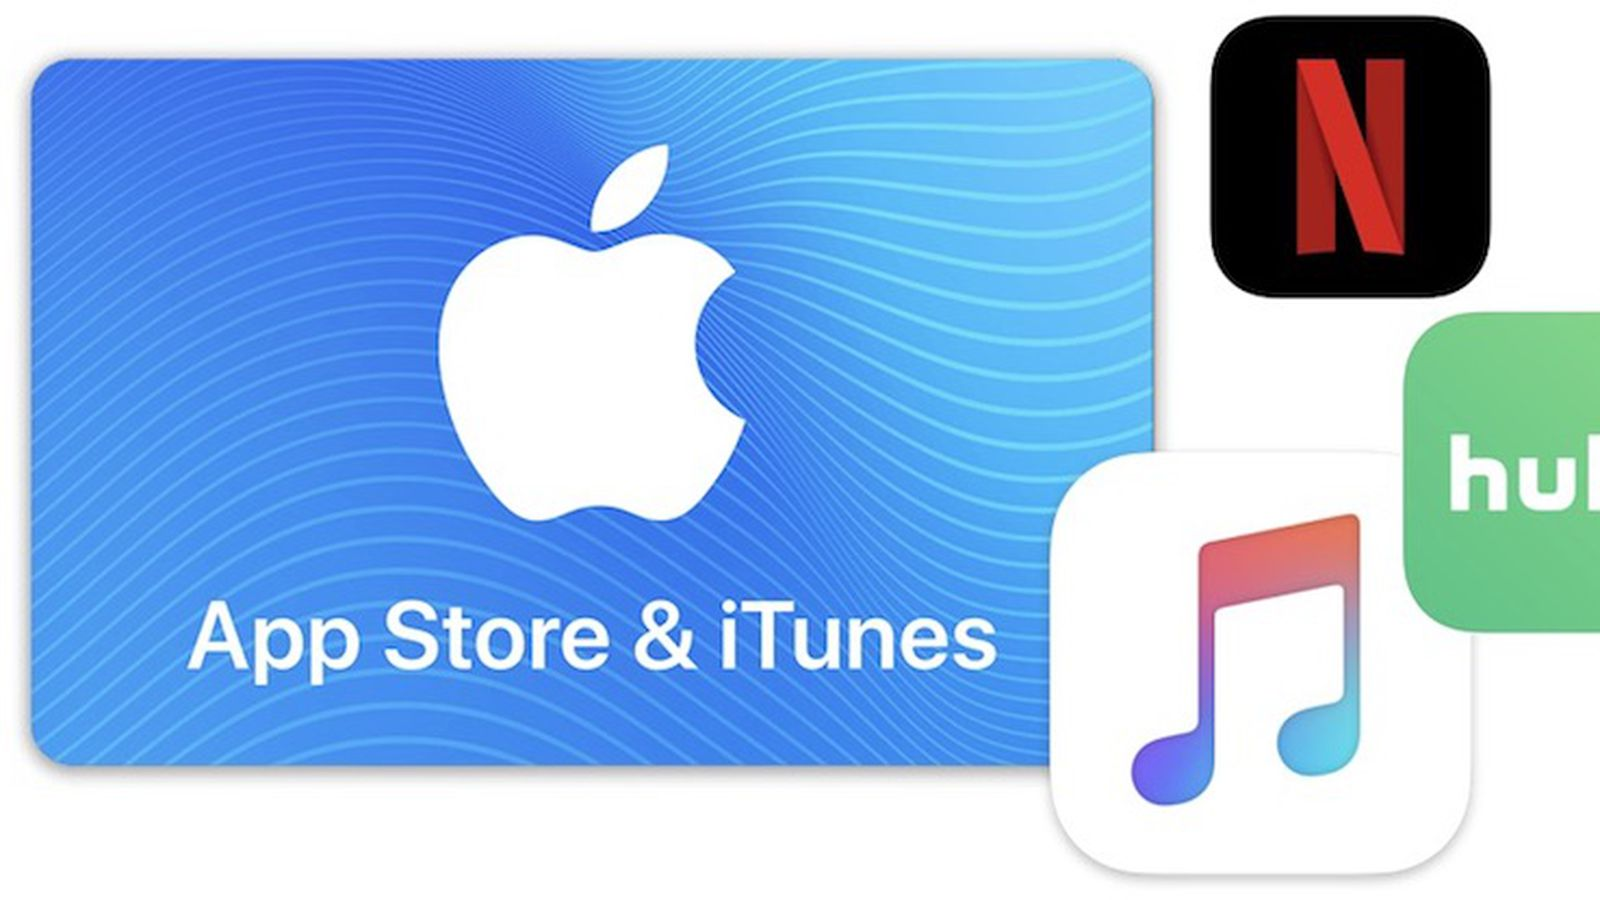 Deals Spotlight Get A 100 Itunes Gift Card For 85 Via Paypal On Ebay Macrumors